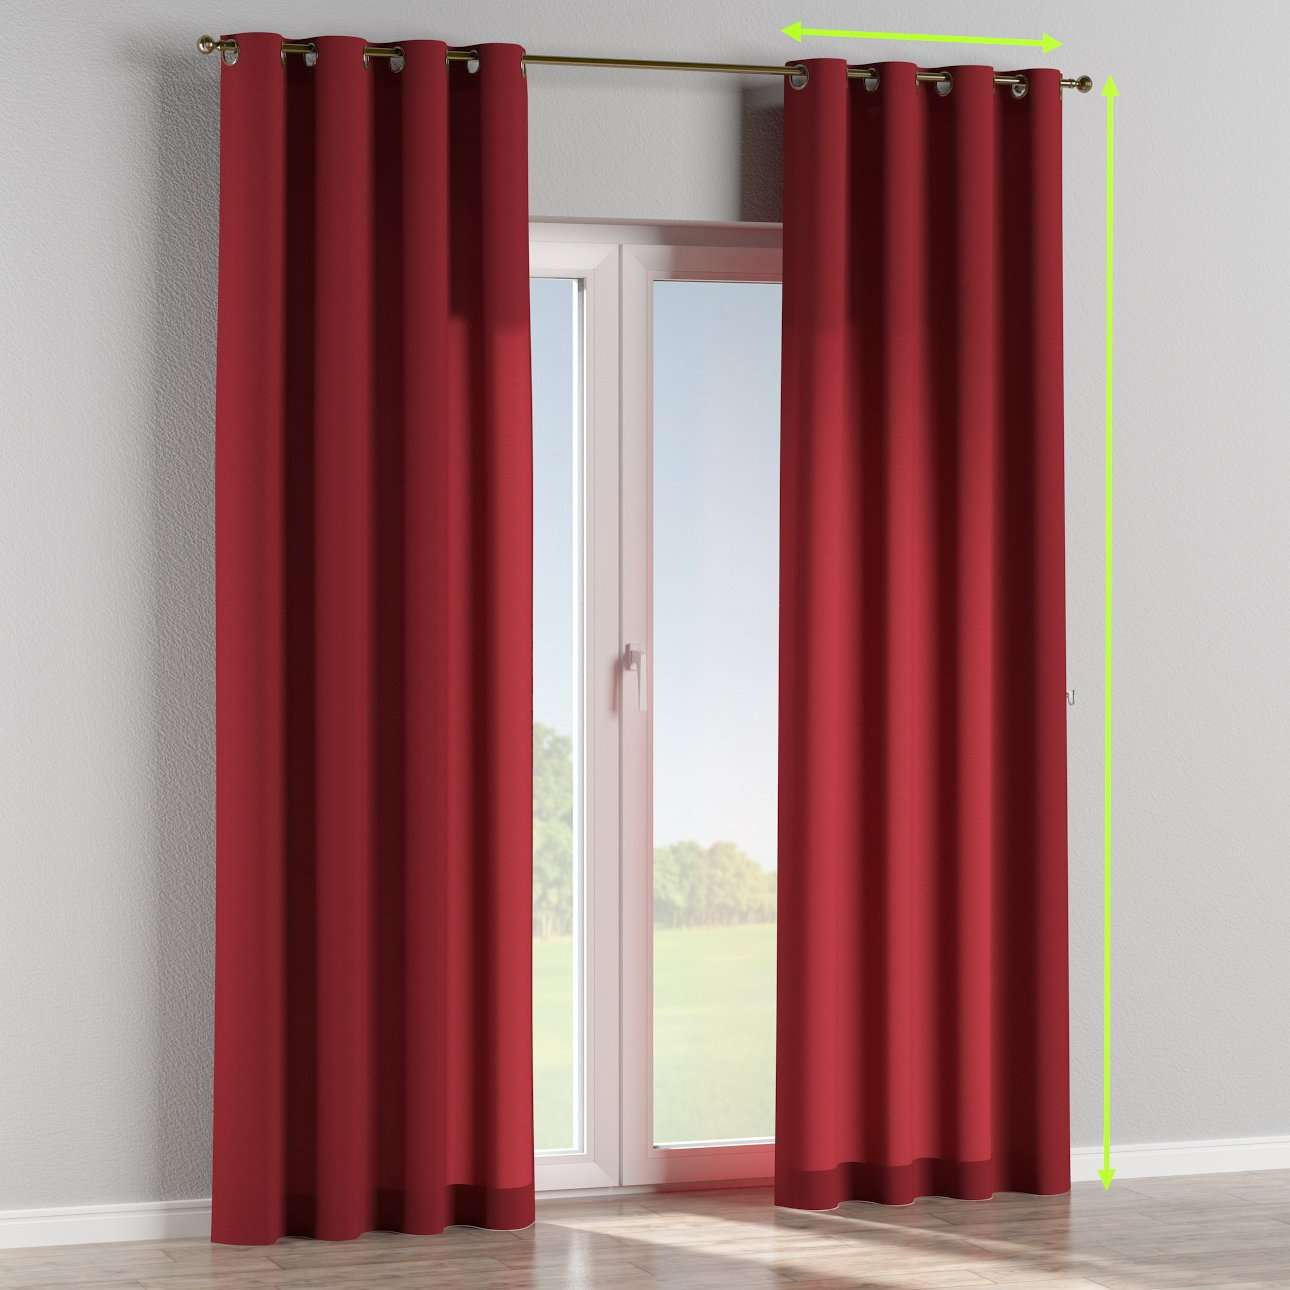 Eyelet lined curtains in collection Jupiter, fabric: 127-15